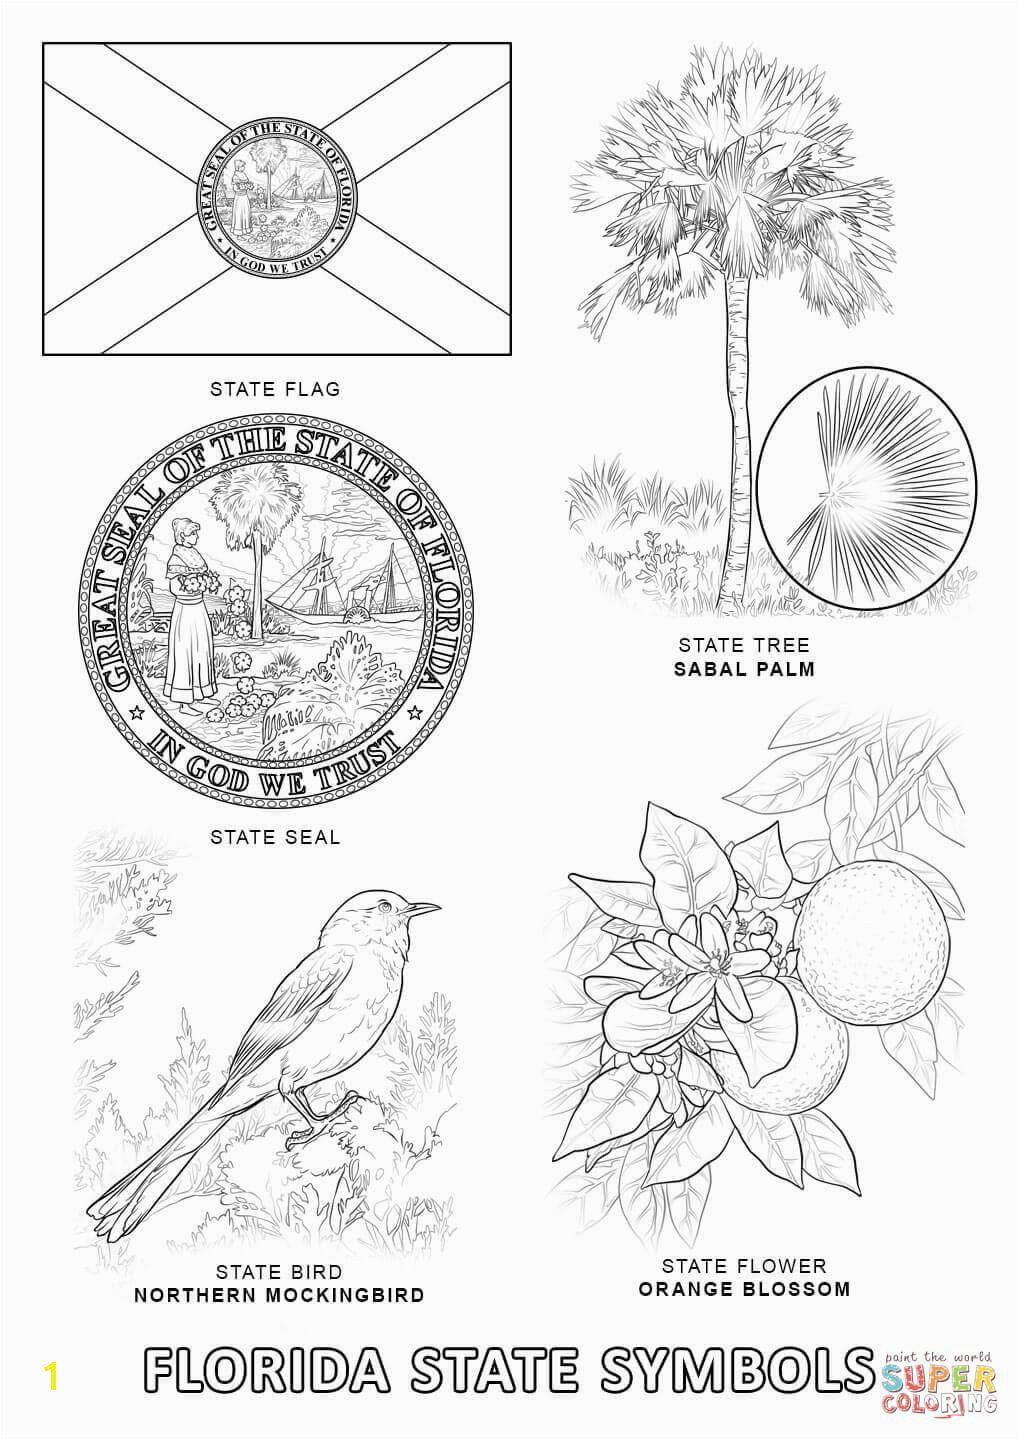 Florida State Symbols coloring page from Florida category Select from printable crafts of cartoons nature animals Bible and many more